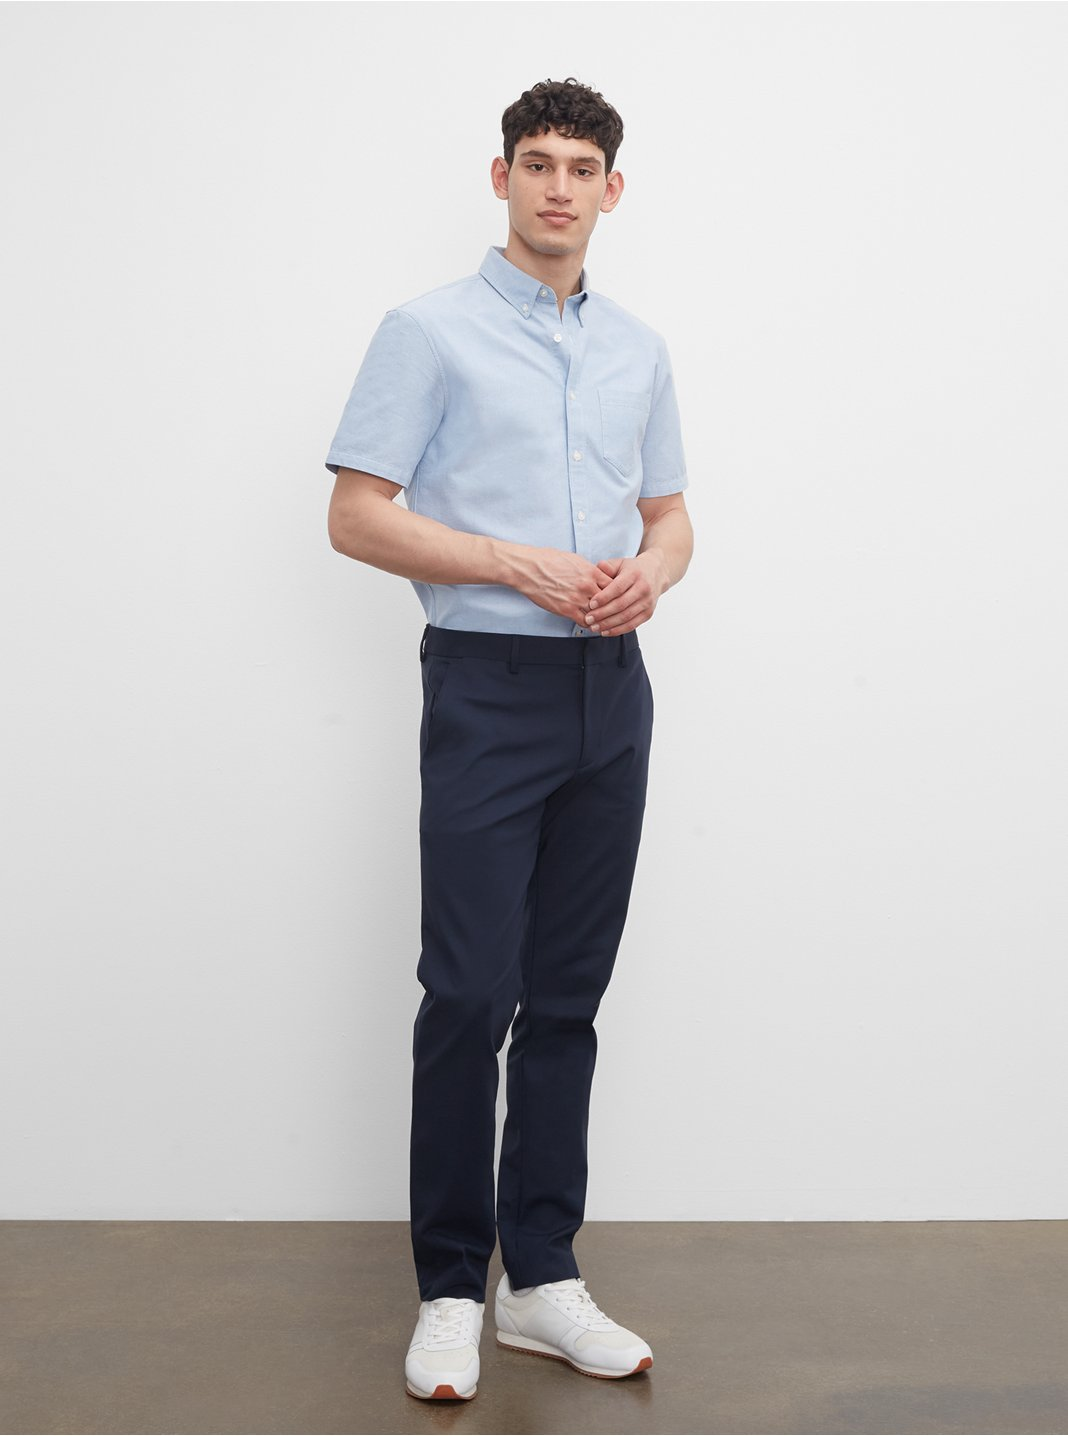 클럽 모나코 맨 바지 Club Monaco Modern Stretch Trouser